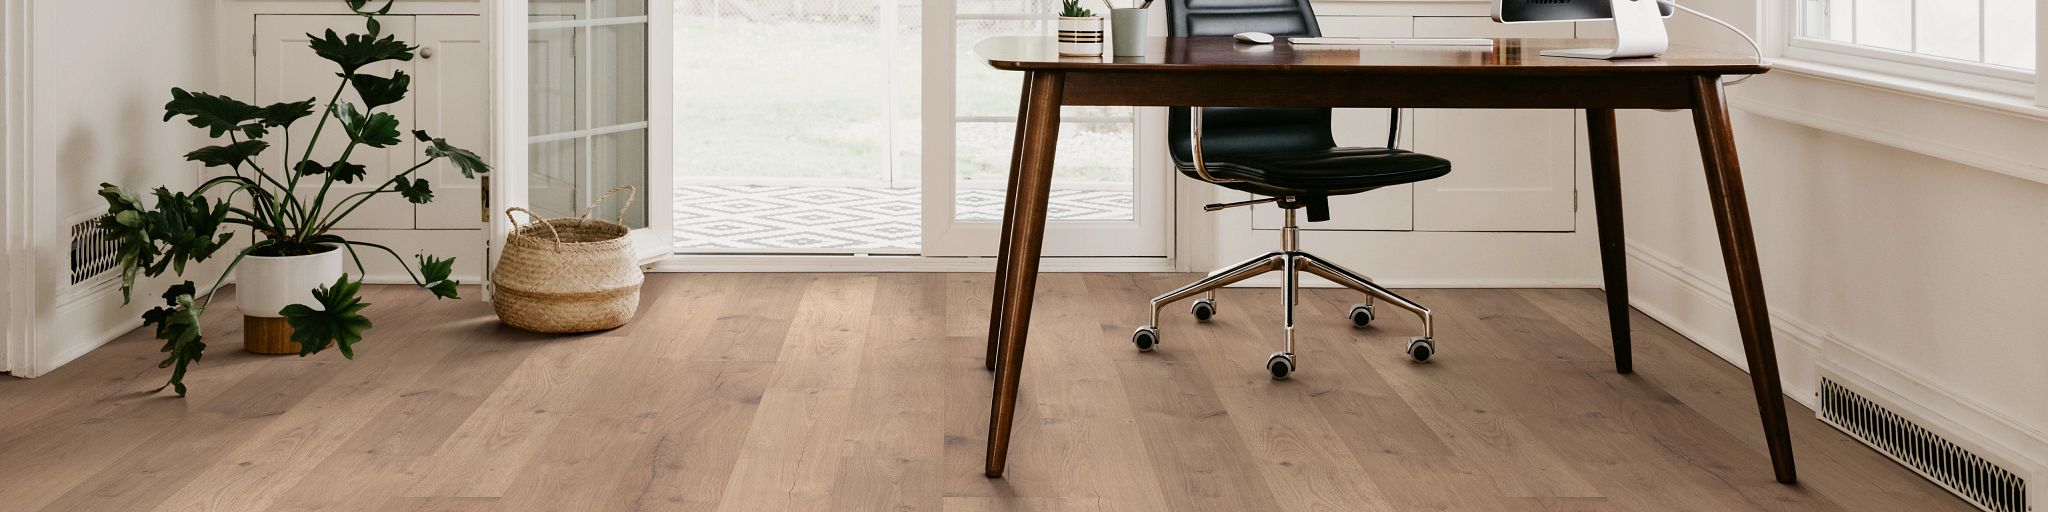 Laminate-Cadence-SL449-07728-VintageBrown-Office-2020